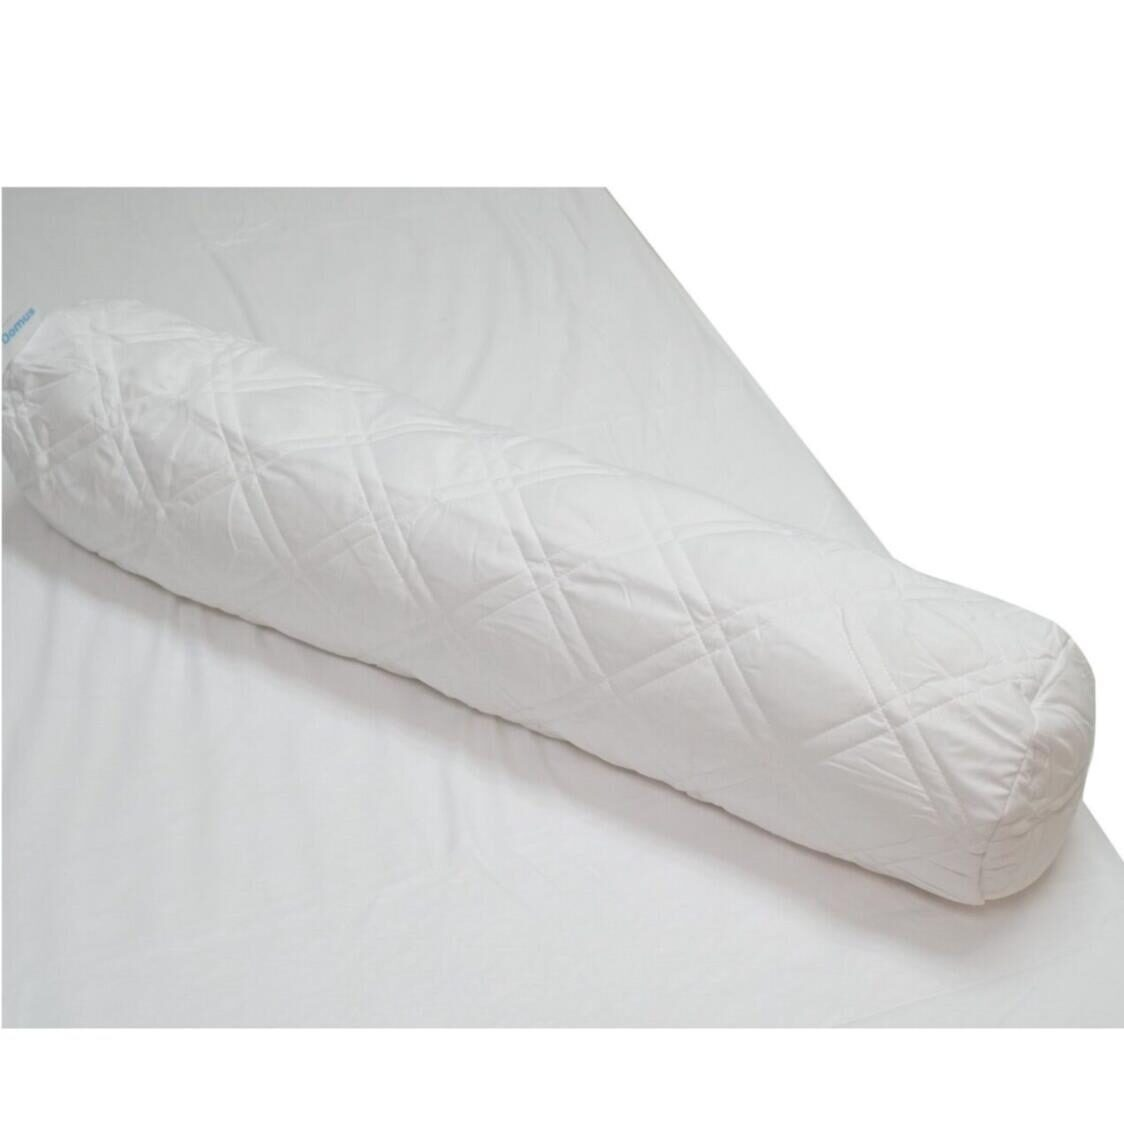 Domus Water Proof Bolster Protector